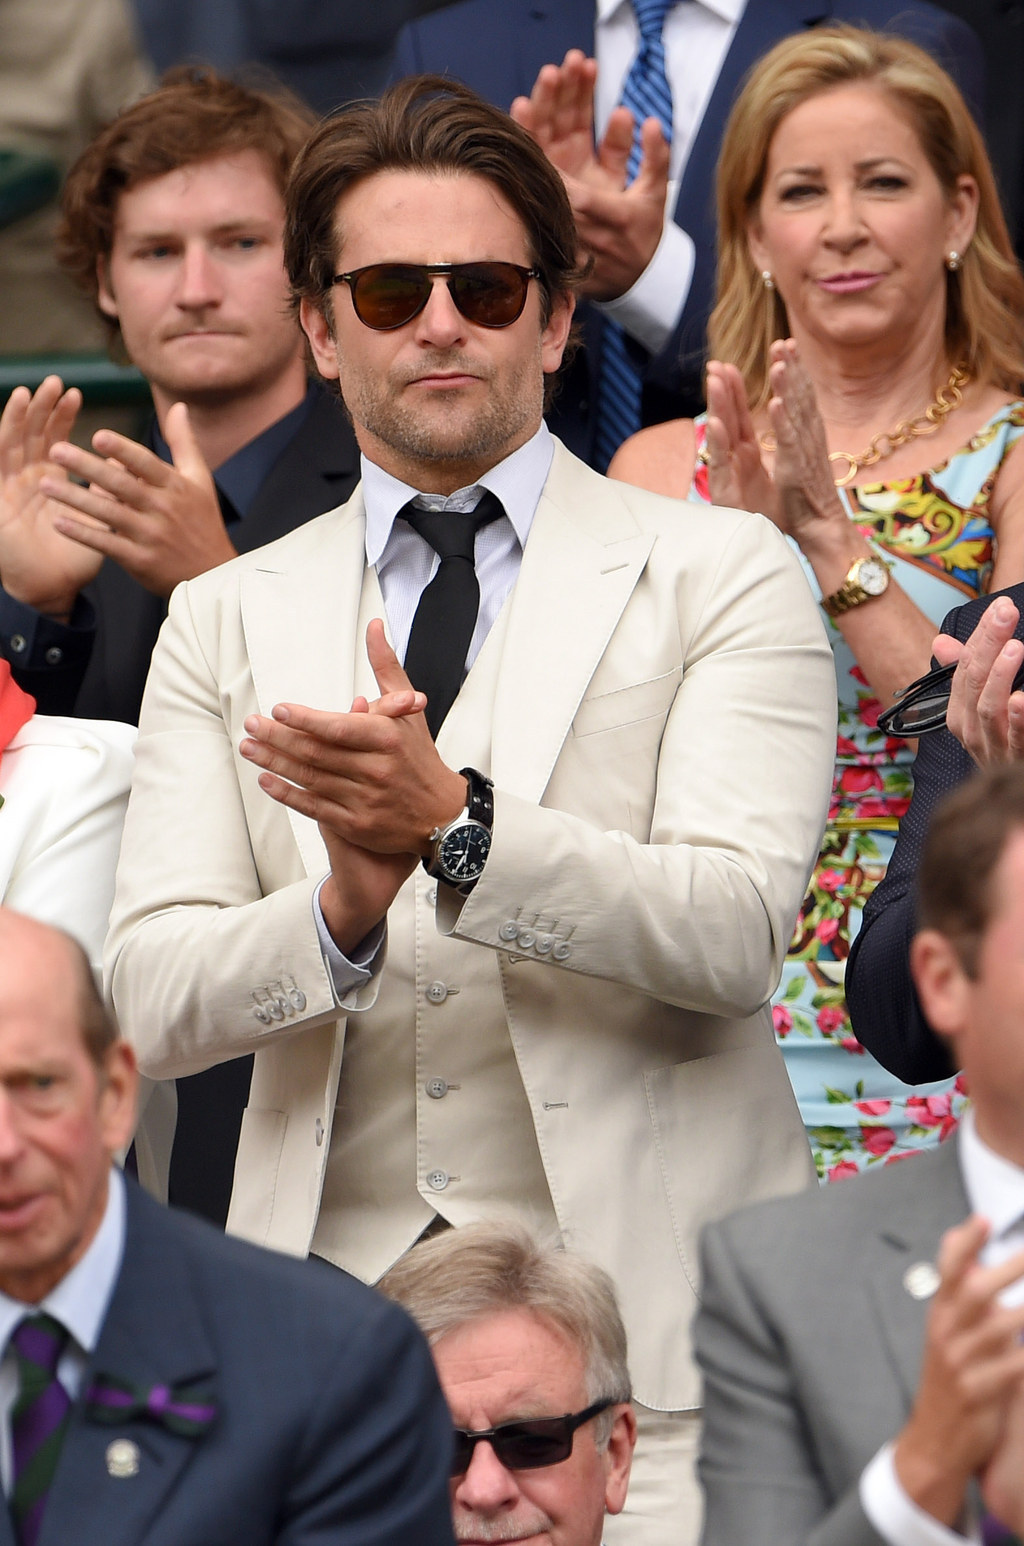 17 Celebrities (And Their Reactions) In The Crowd At Wimbeldon